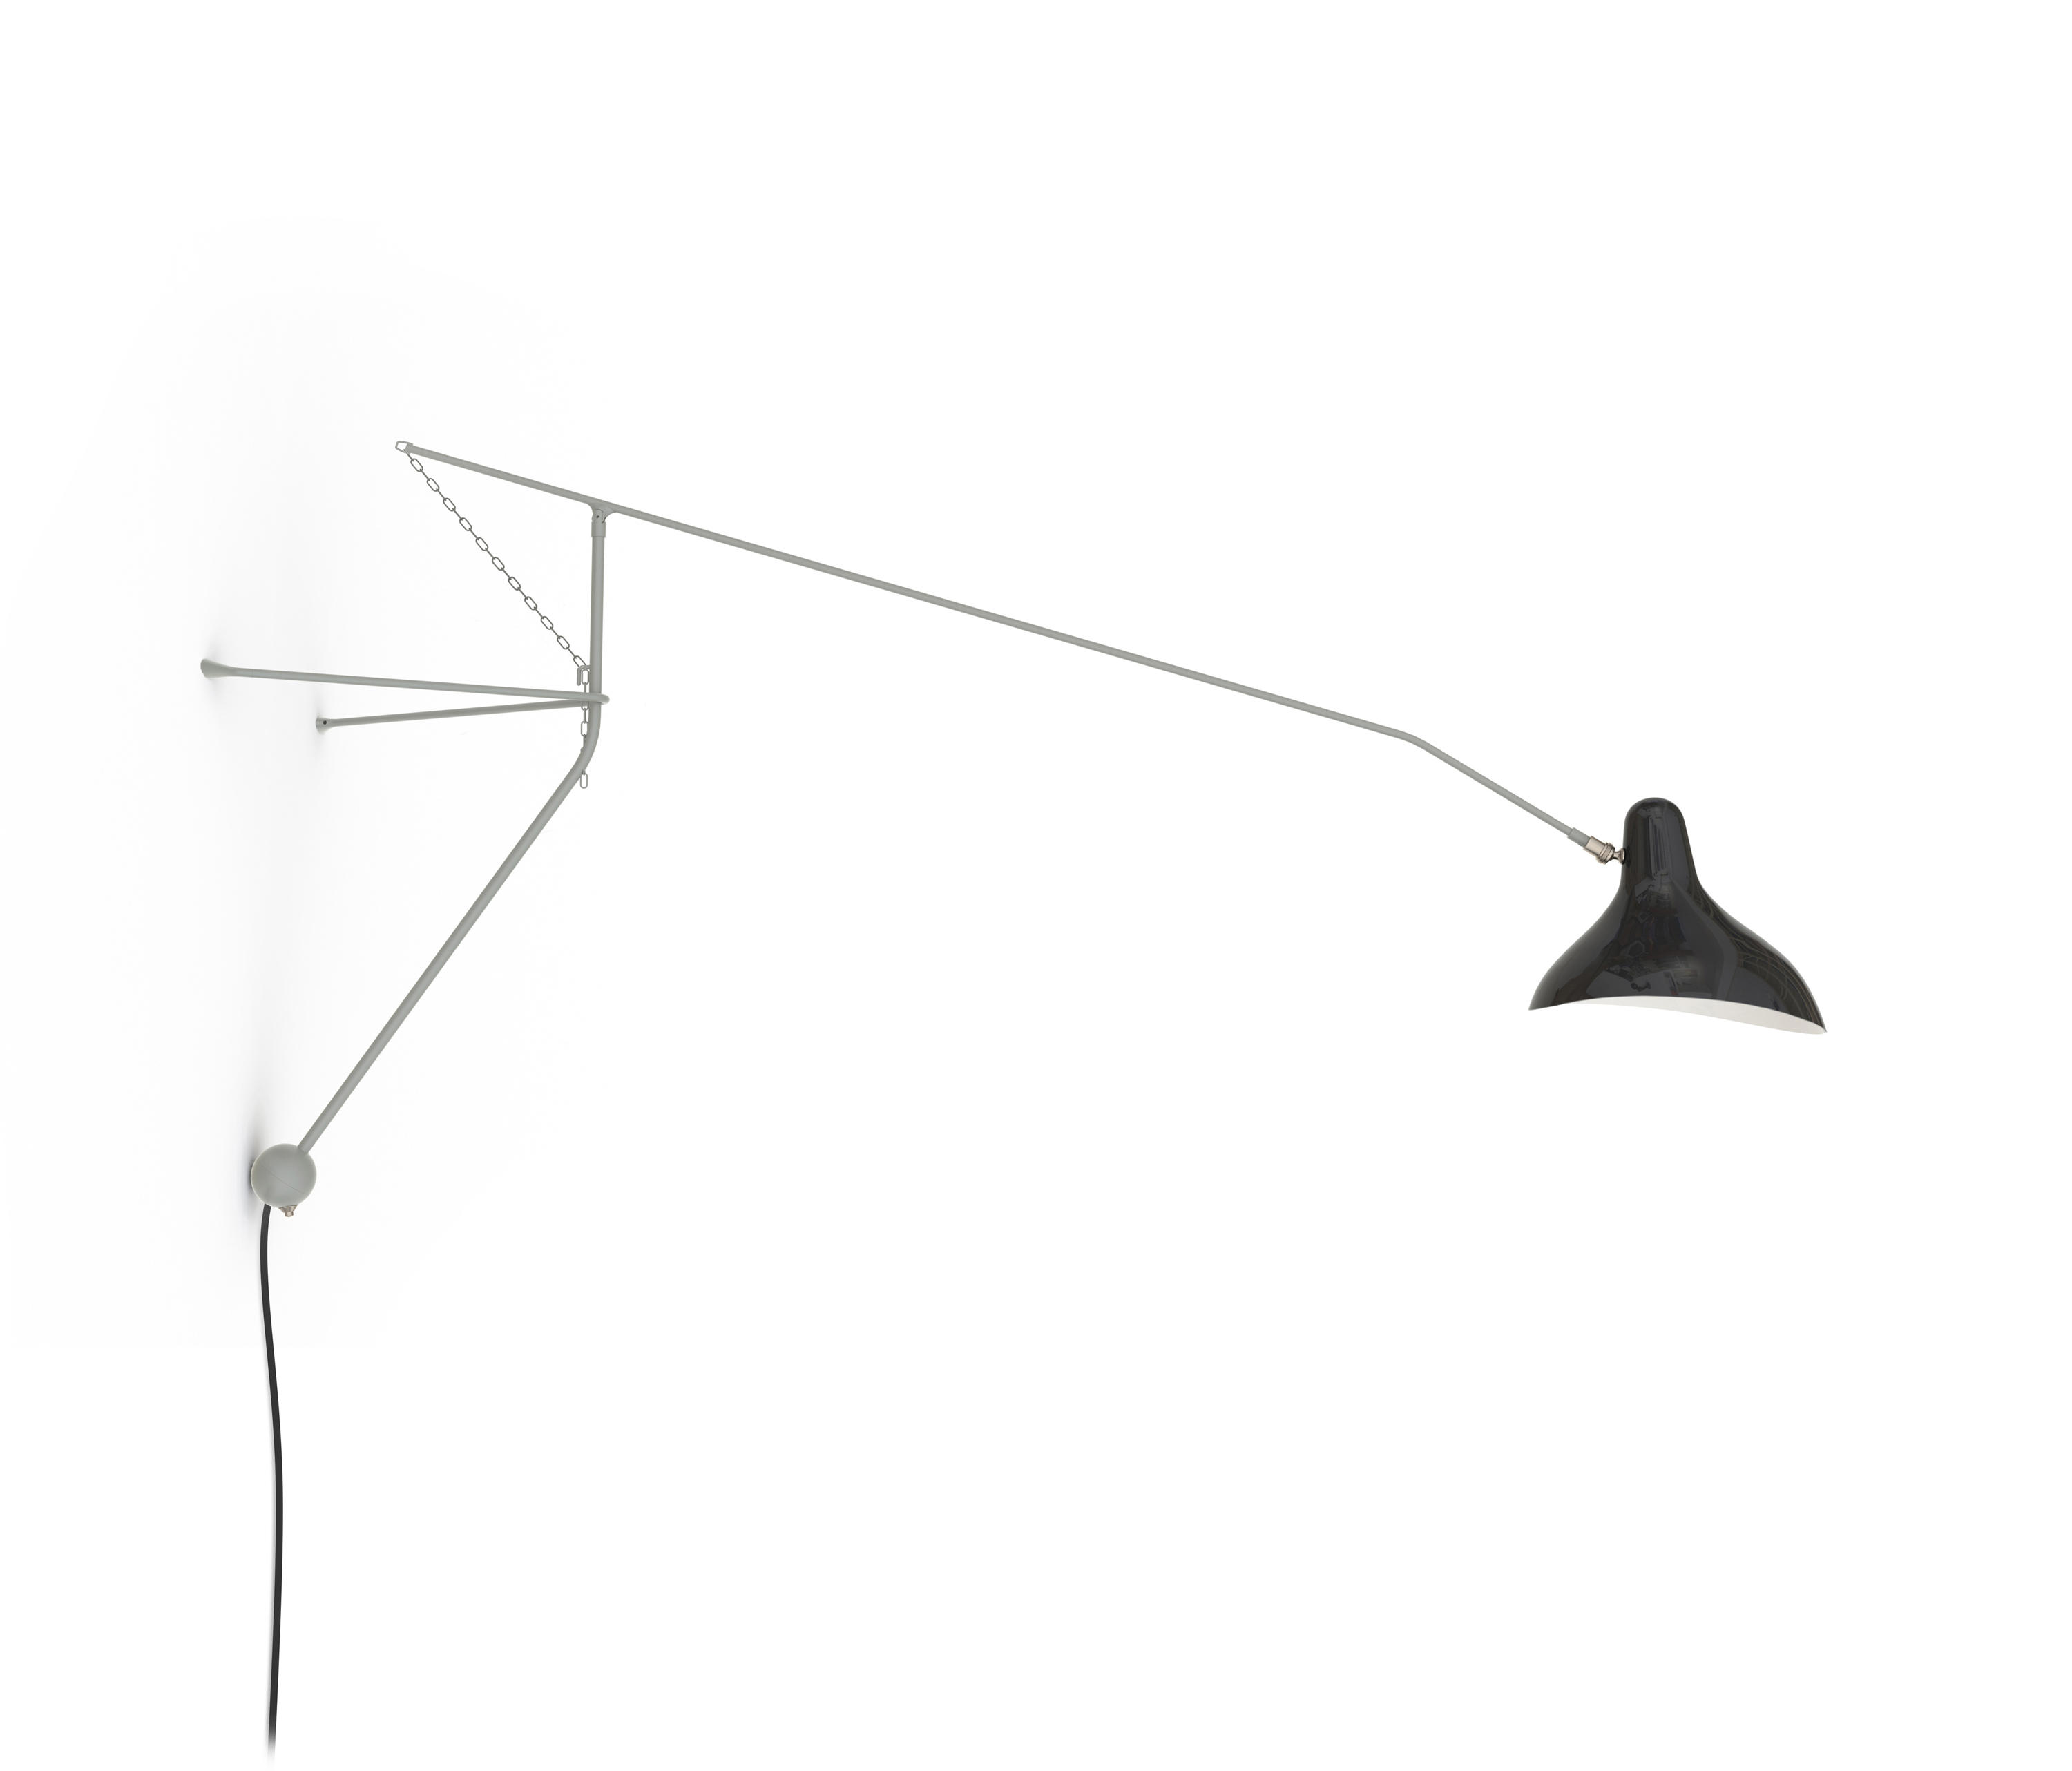 Mantis Bs2 Gr Bl Wall Lights From Dcw 233 Ditions